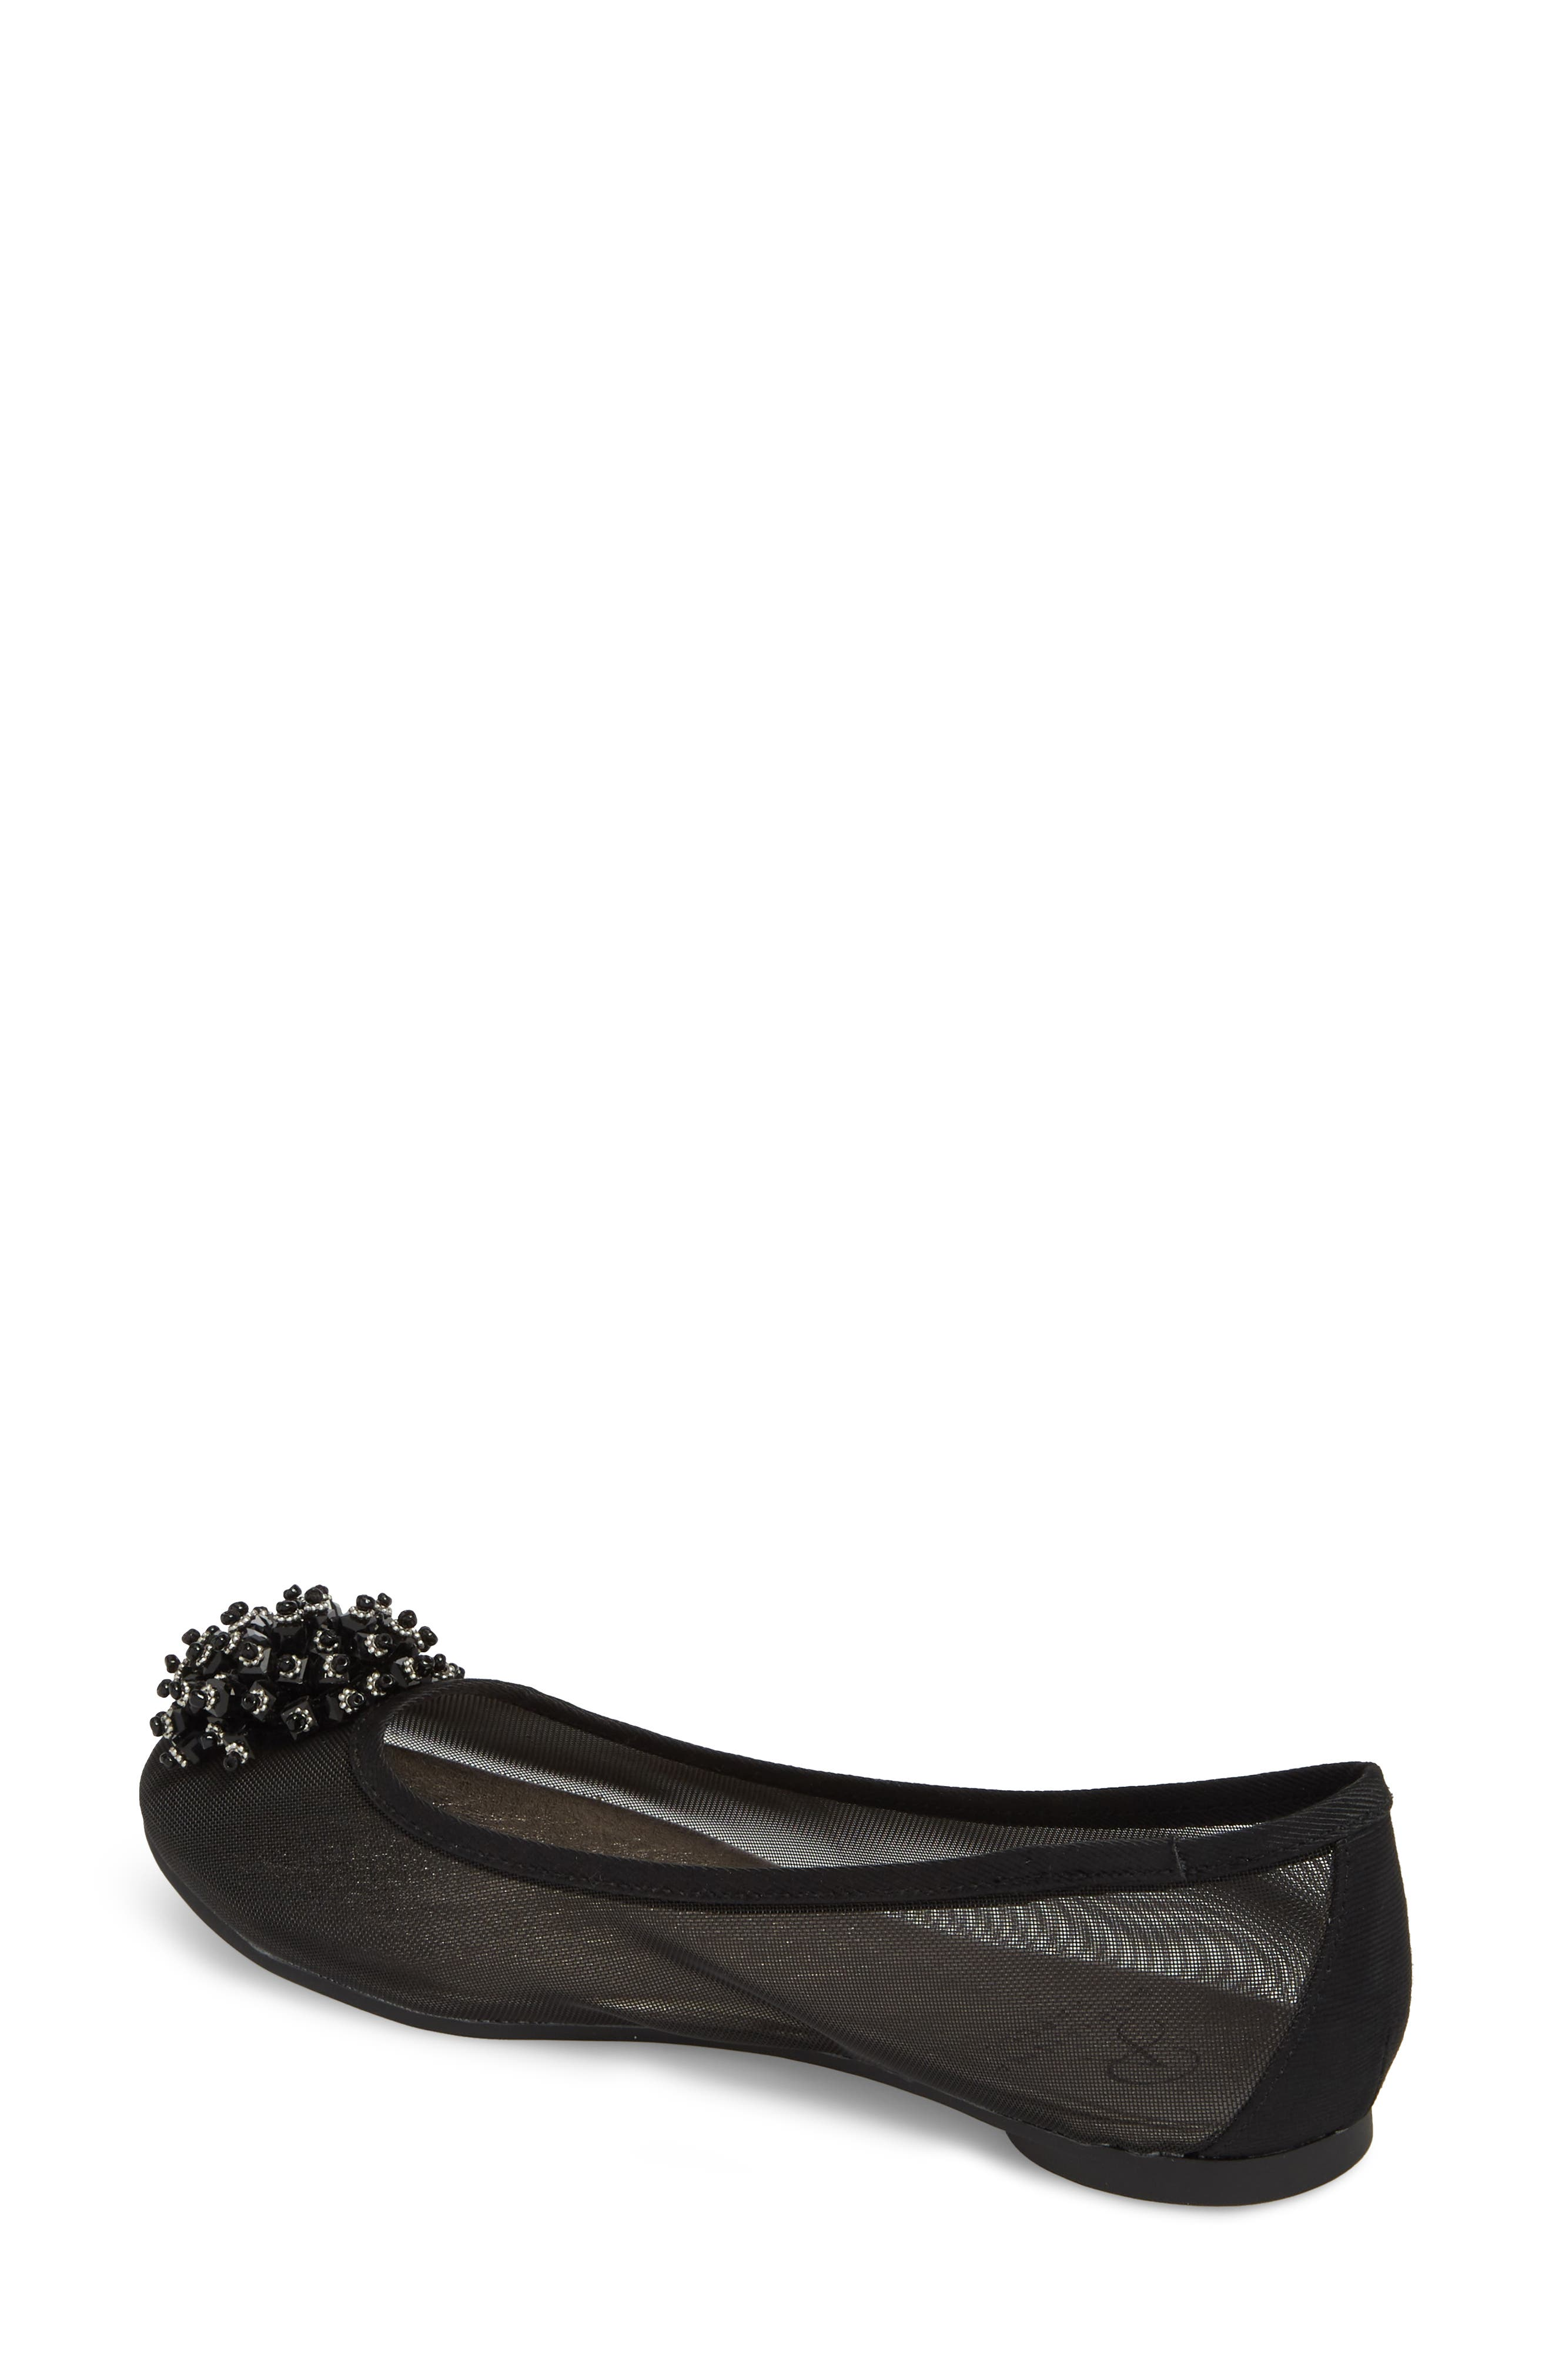 ADRIANNA PAPELL,                             Stevie Embellished Flat,                             Alternate thumbnail 2, color,                             001